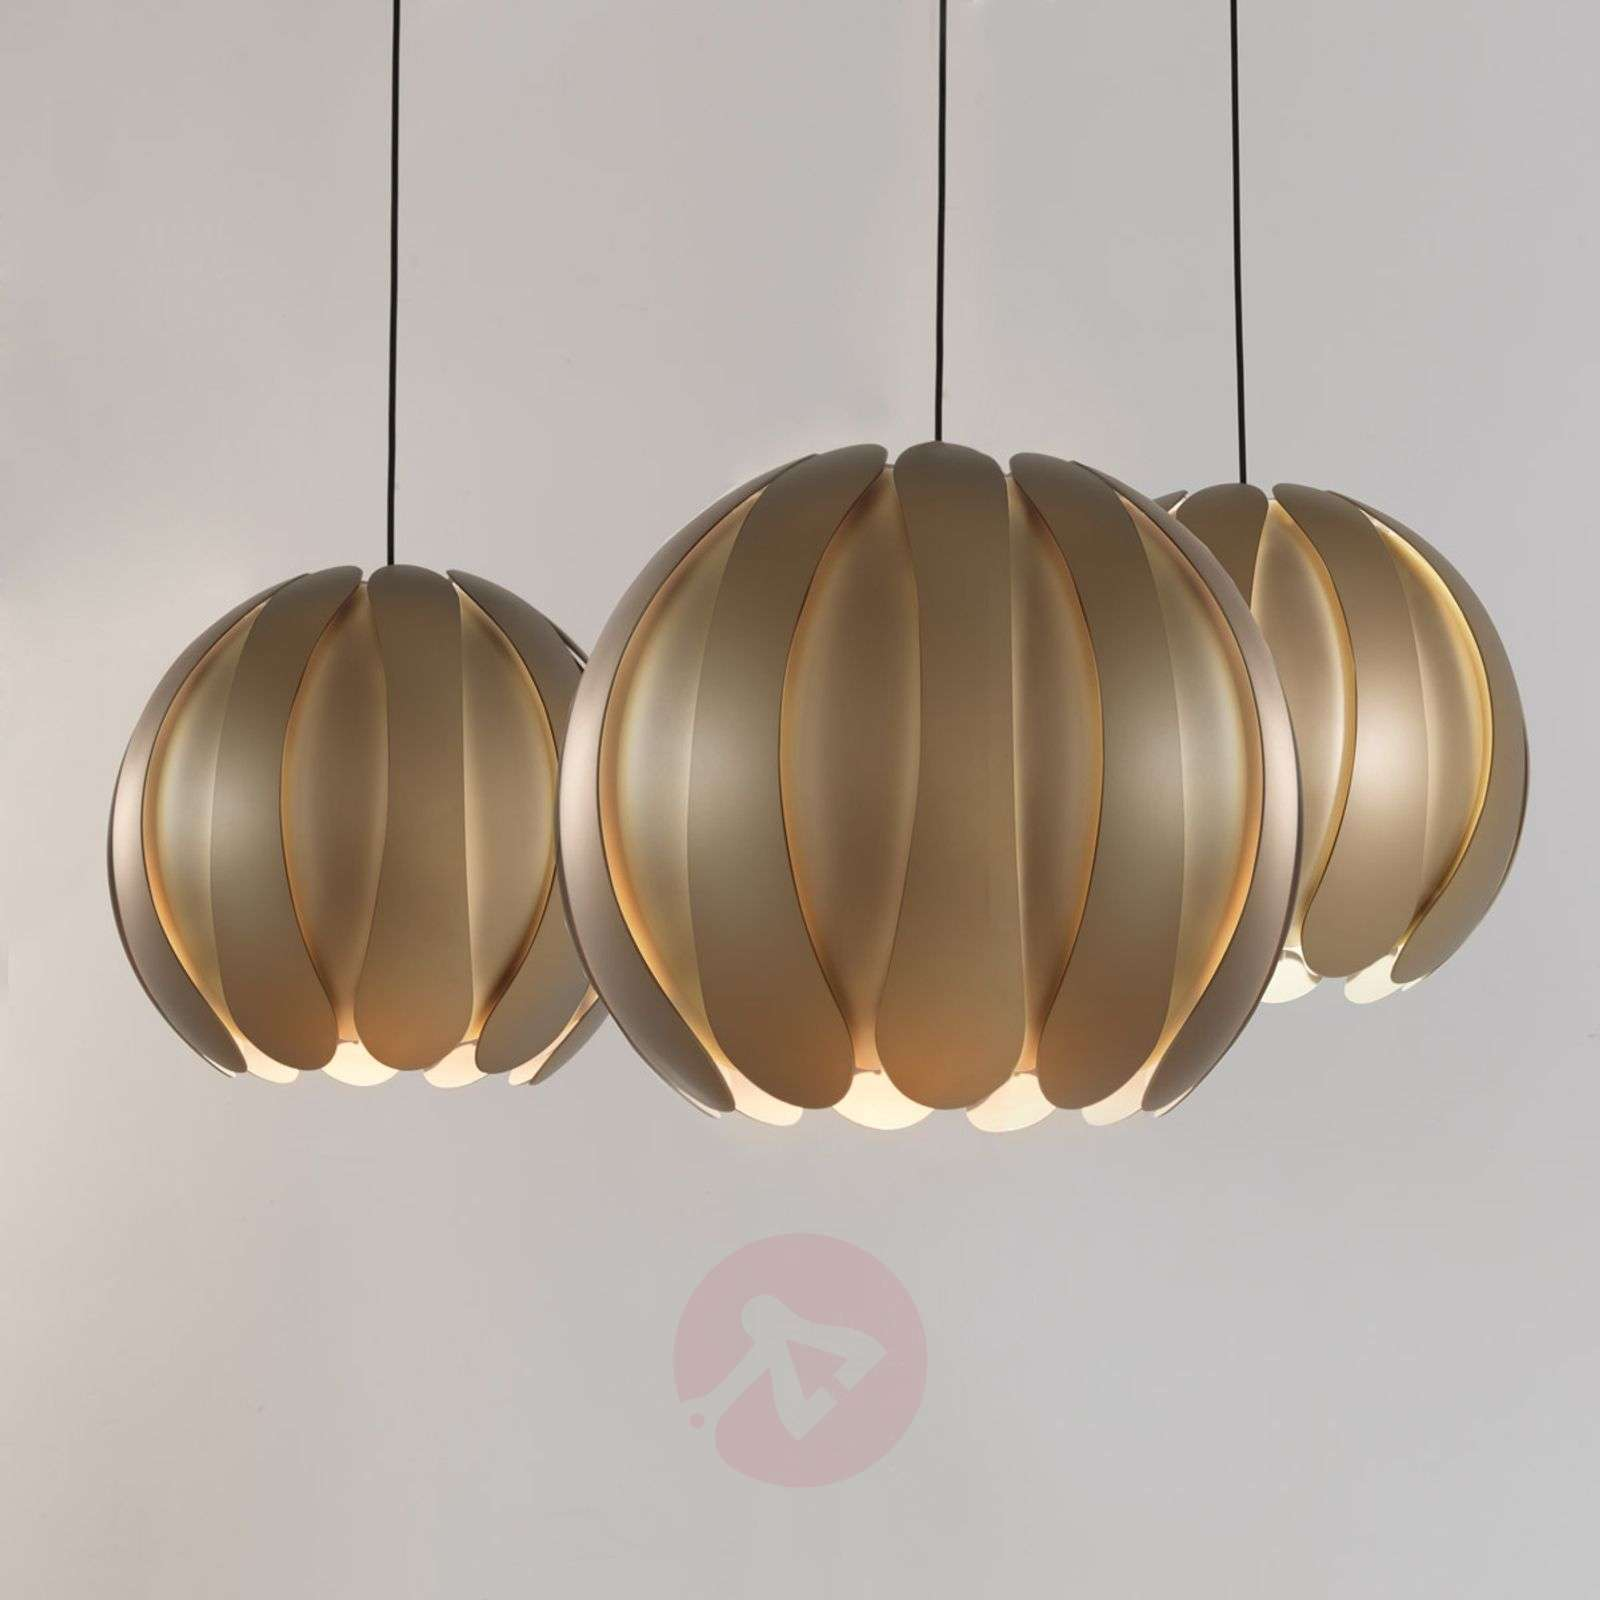 Extravagant ontworpen hanglamp Angie-6026523-01